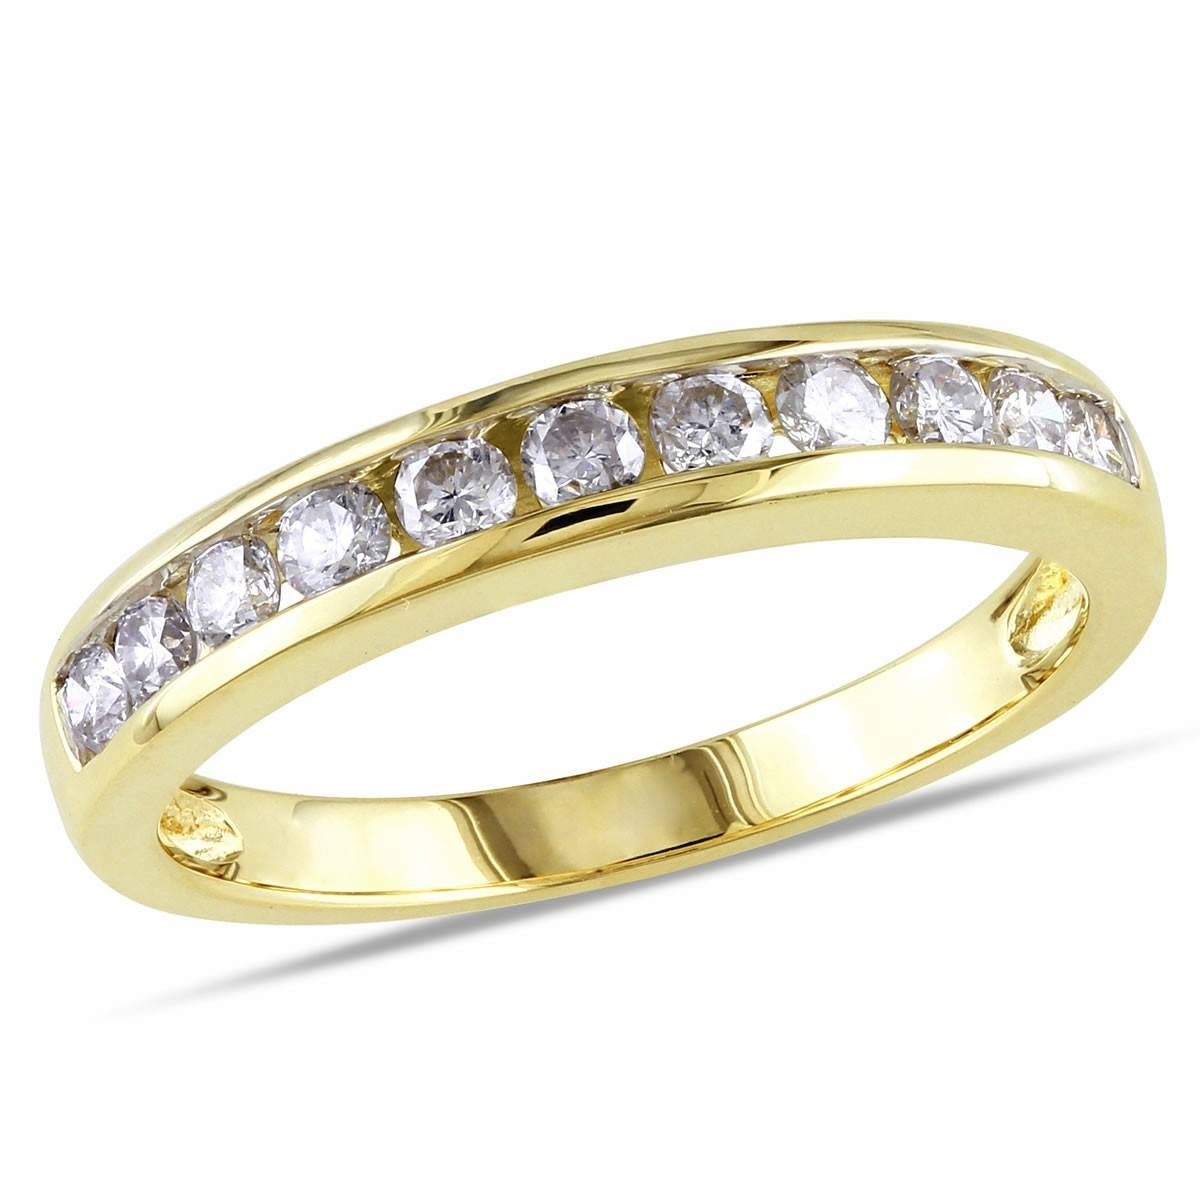 10k Yellow Gold 1/2 Ct Diamond Tw Eternity Anniversary Ring, Gh I2 Regarding Current Diamond Anniversary Rings (Gallery 16 of 25)